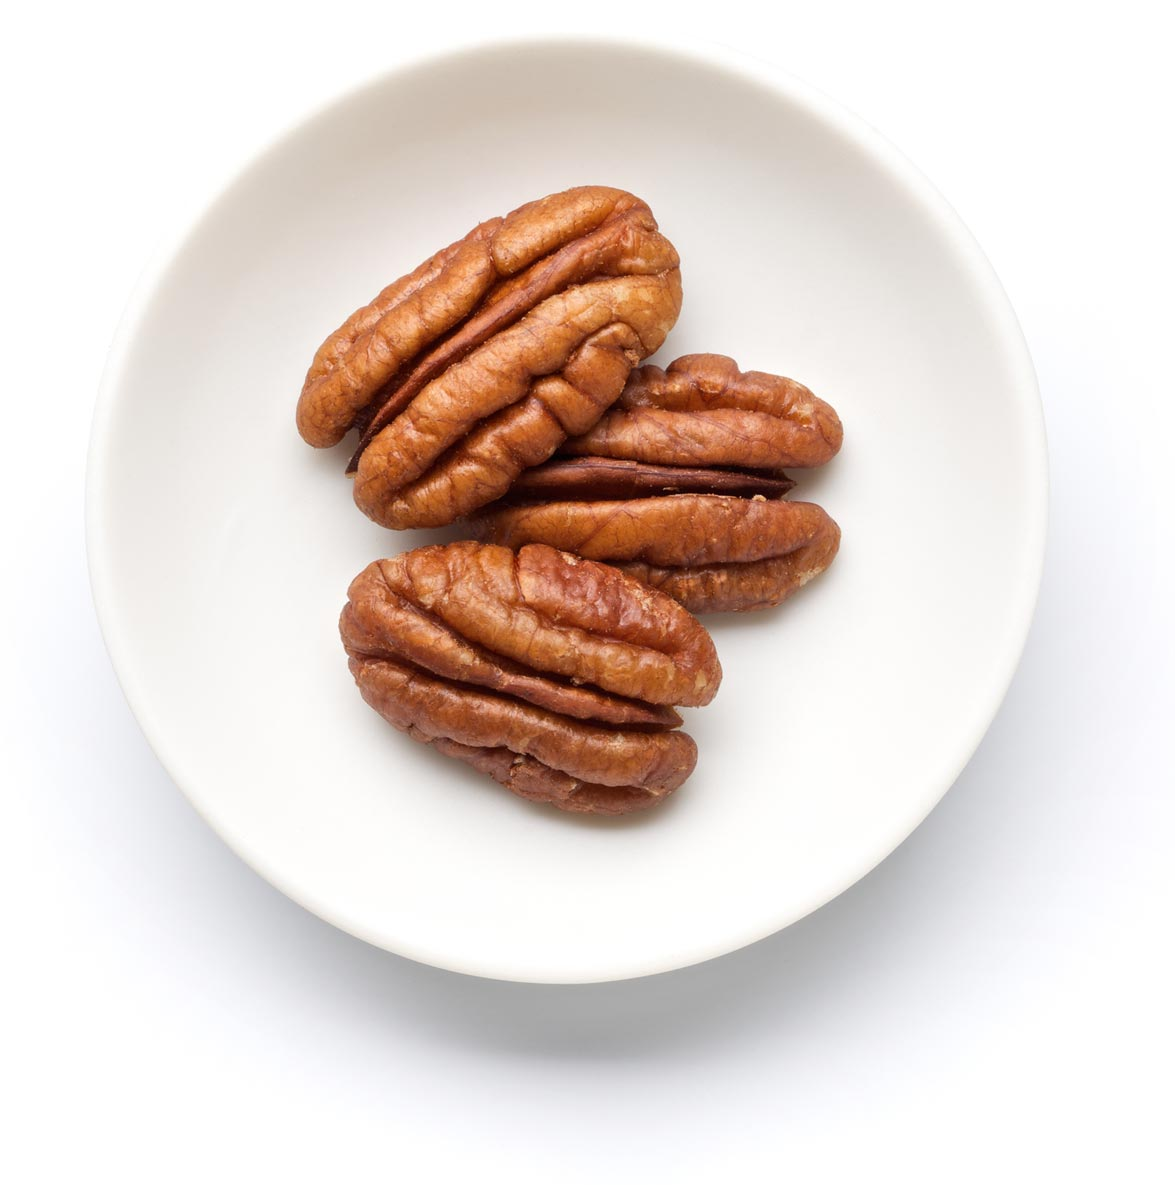 Shelled Pecans in a Plate